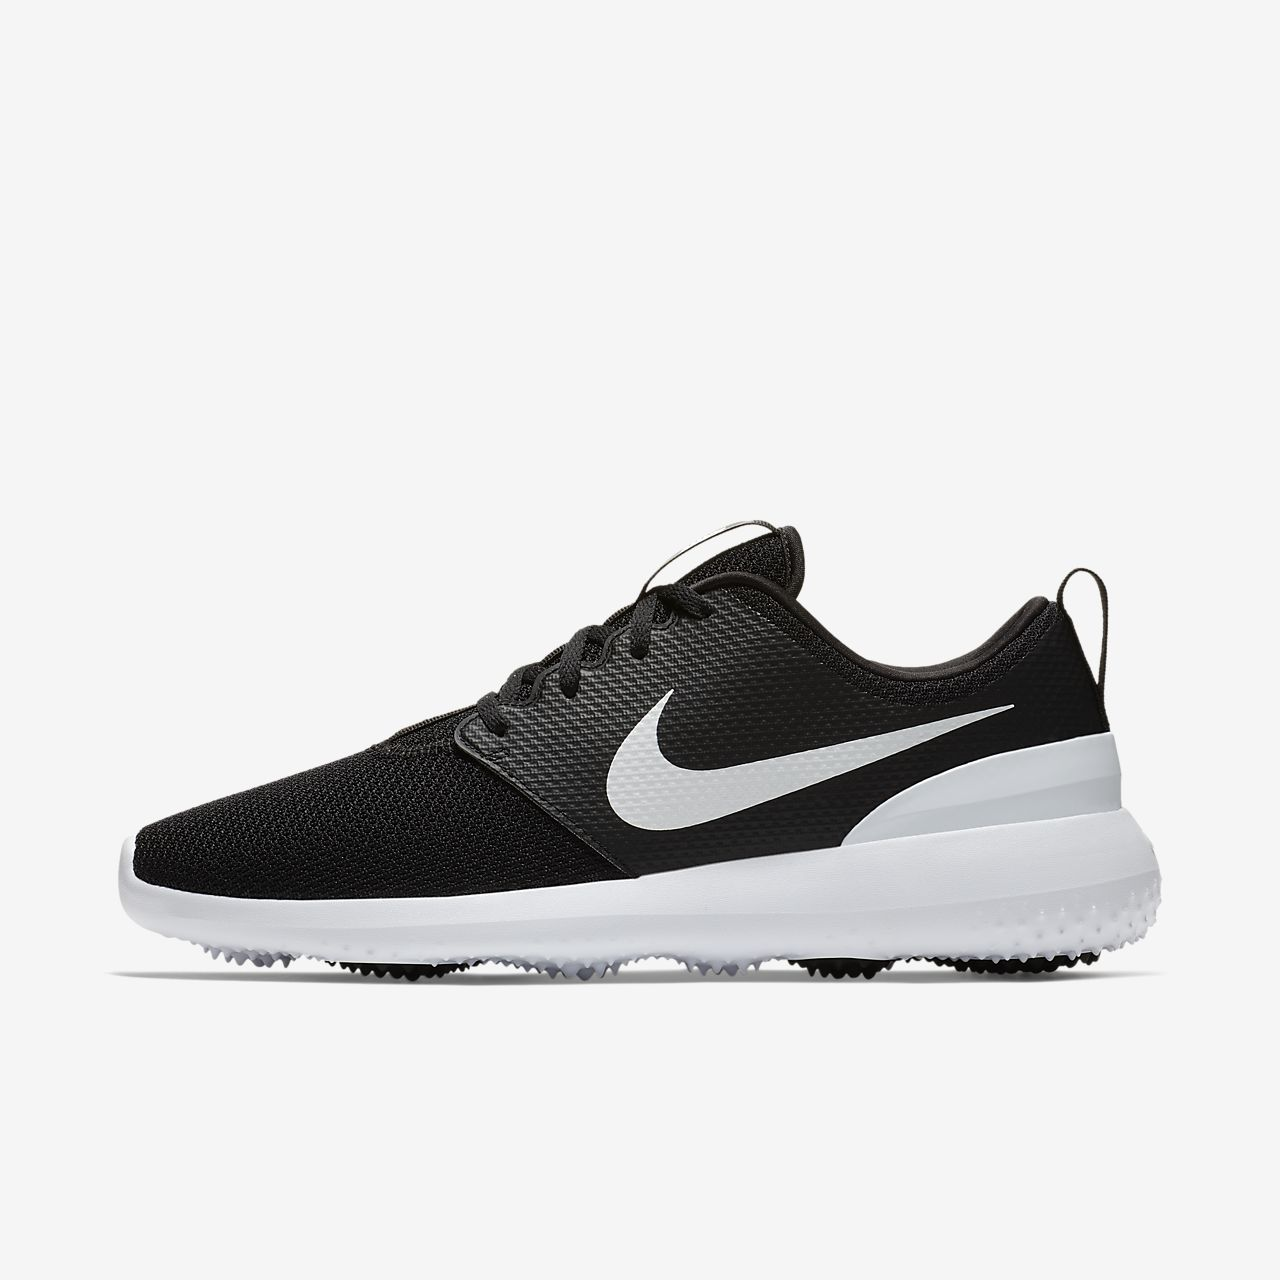 8f463884520 Nike Roshe G Men's Golf Shoe